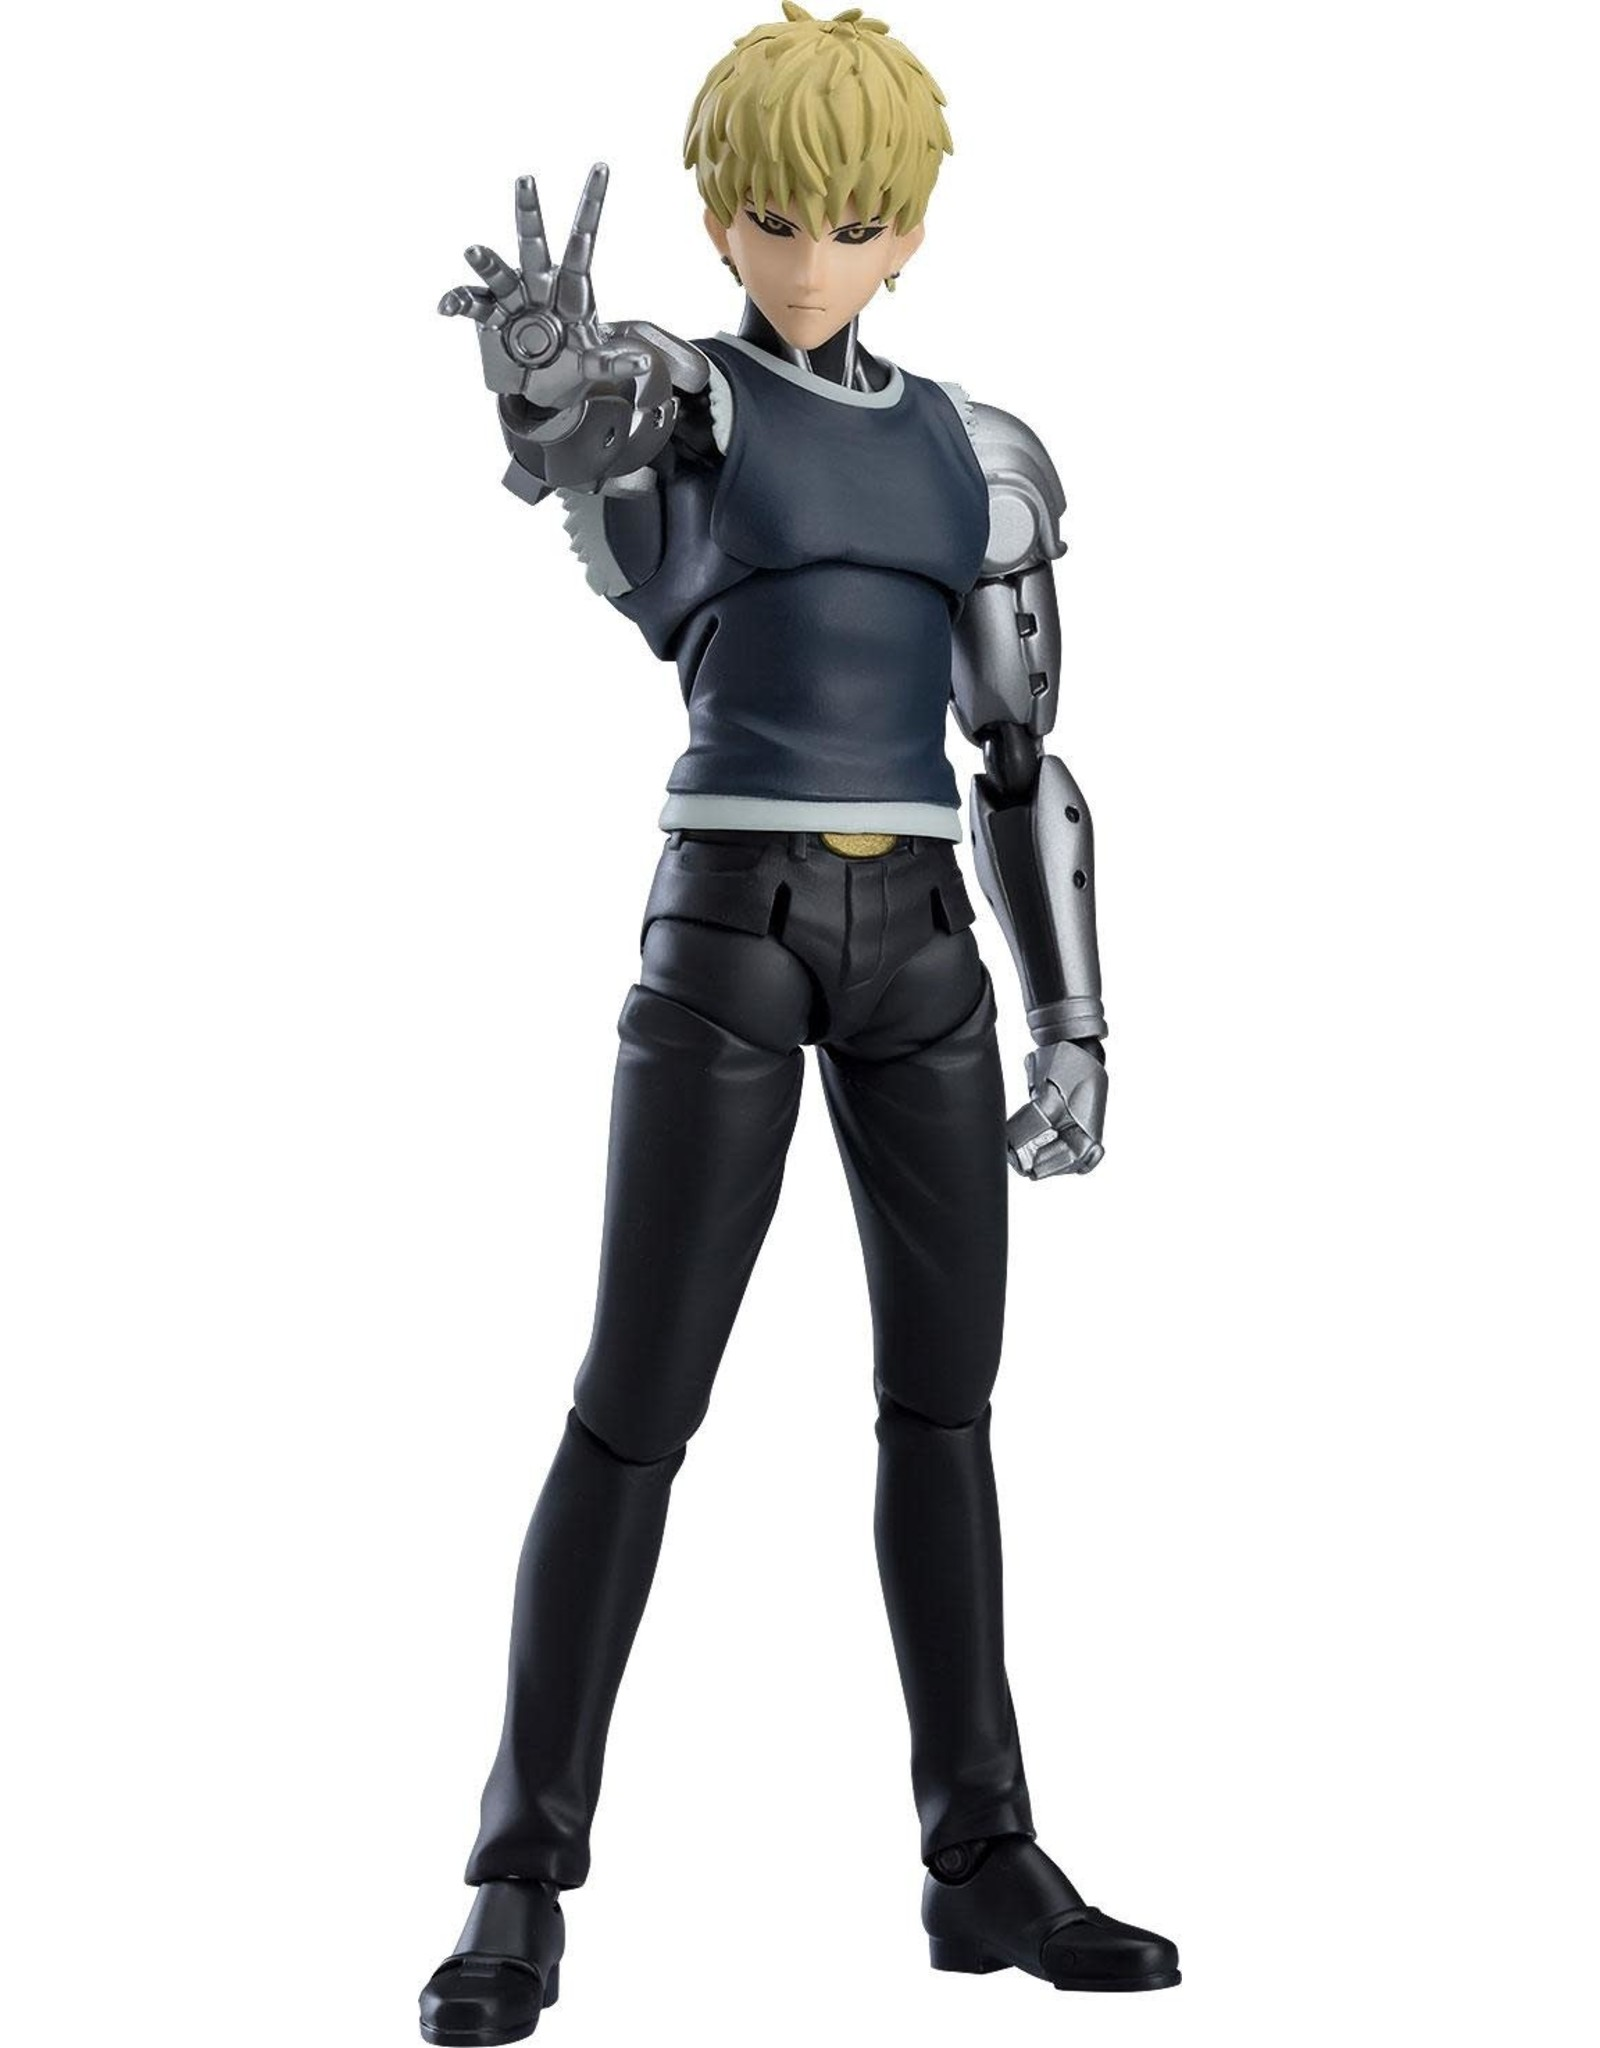 Max Factory ONE PUNCH MAN Figurine Figma 16cm - Genos